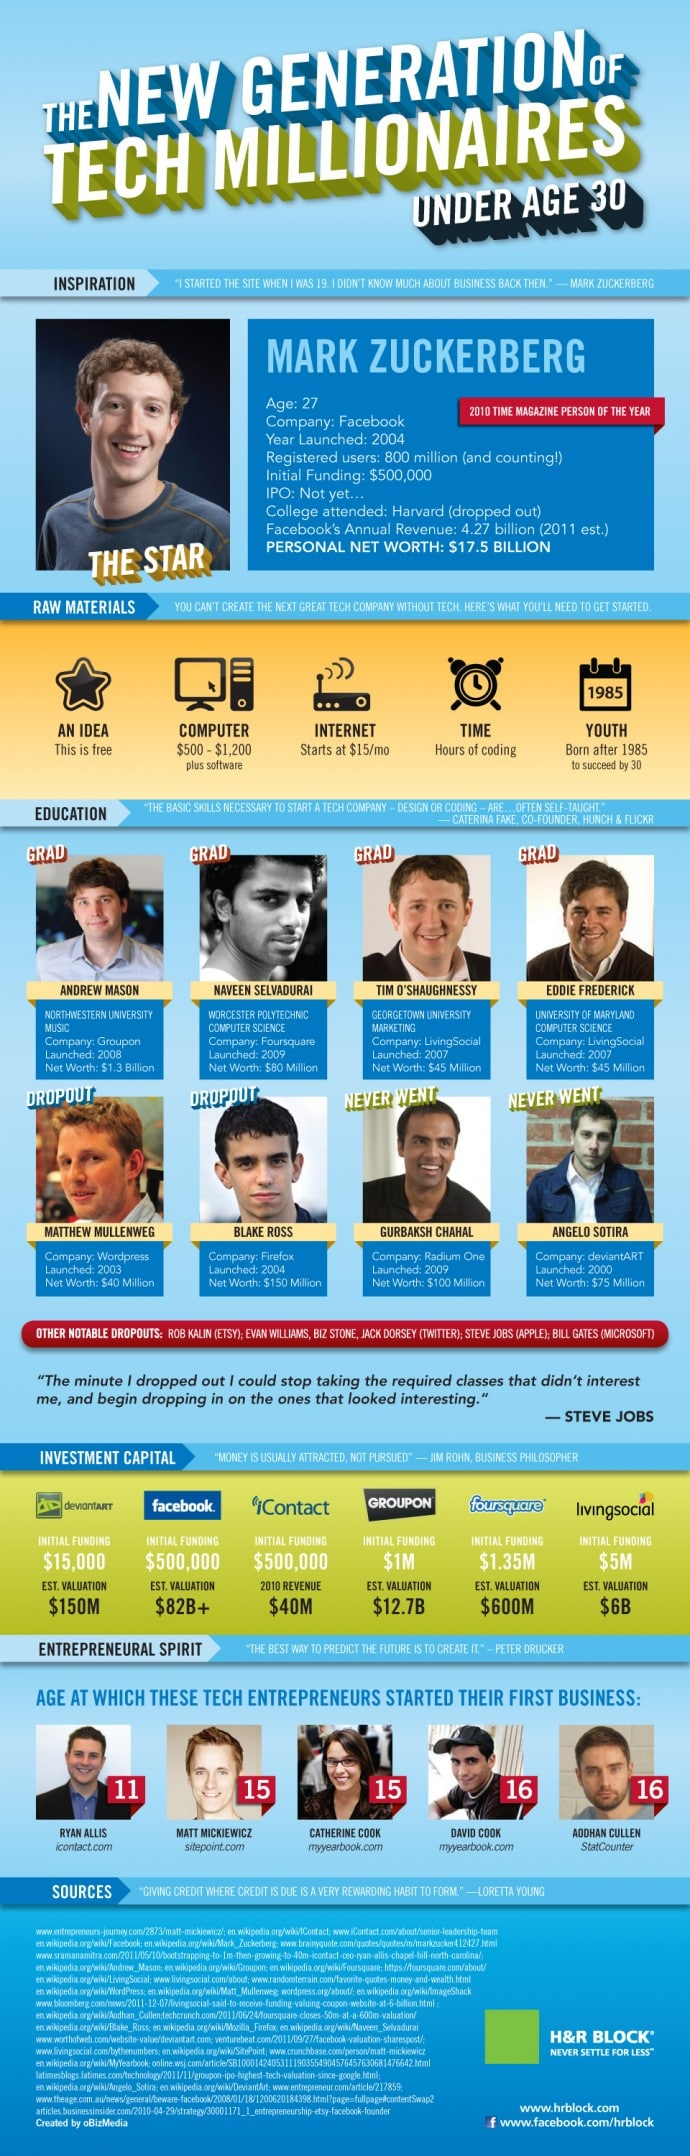 Tech Millionaires Under 30 Who Will Inspire You [Infographic]